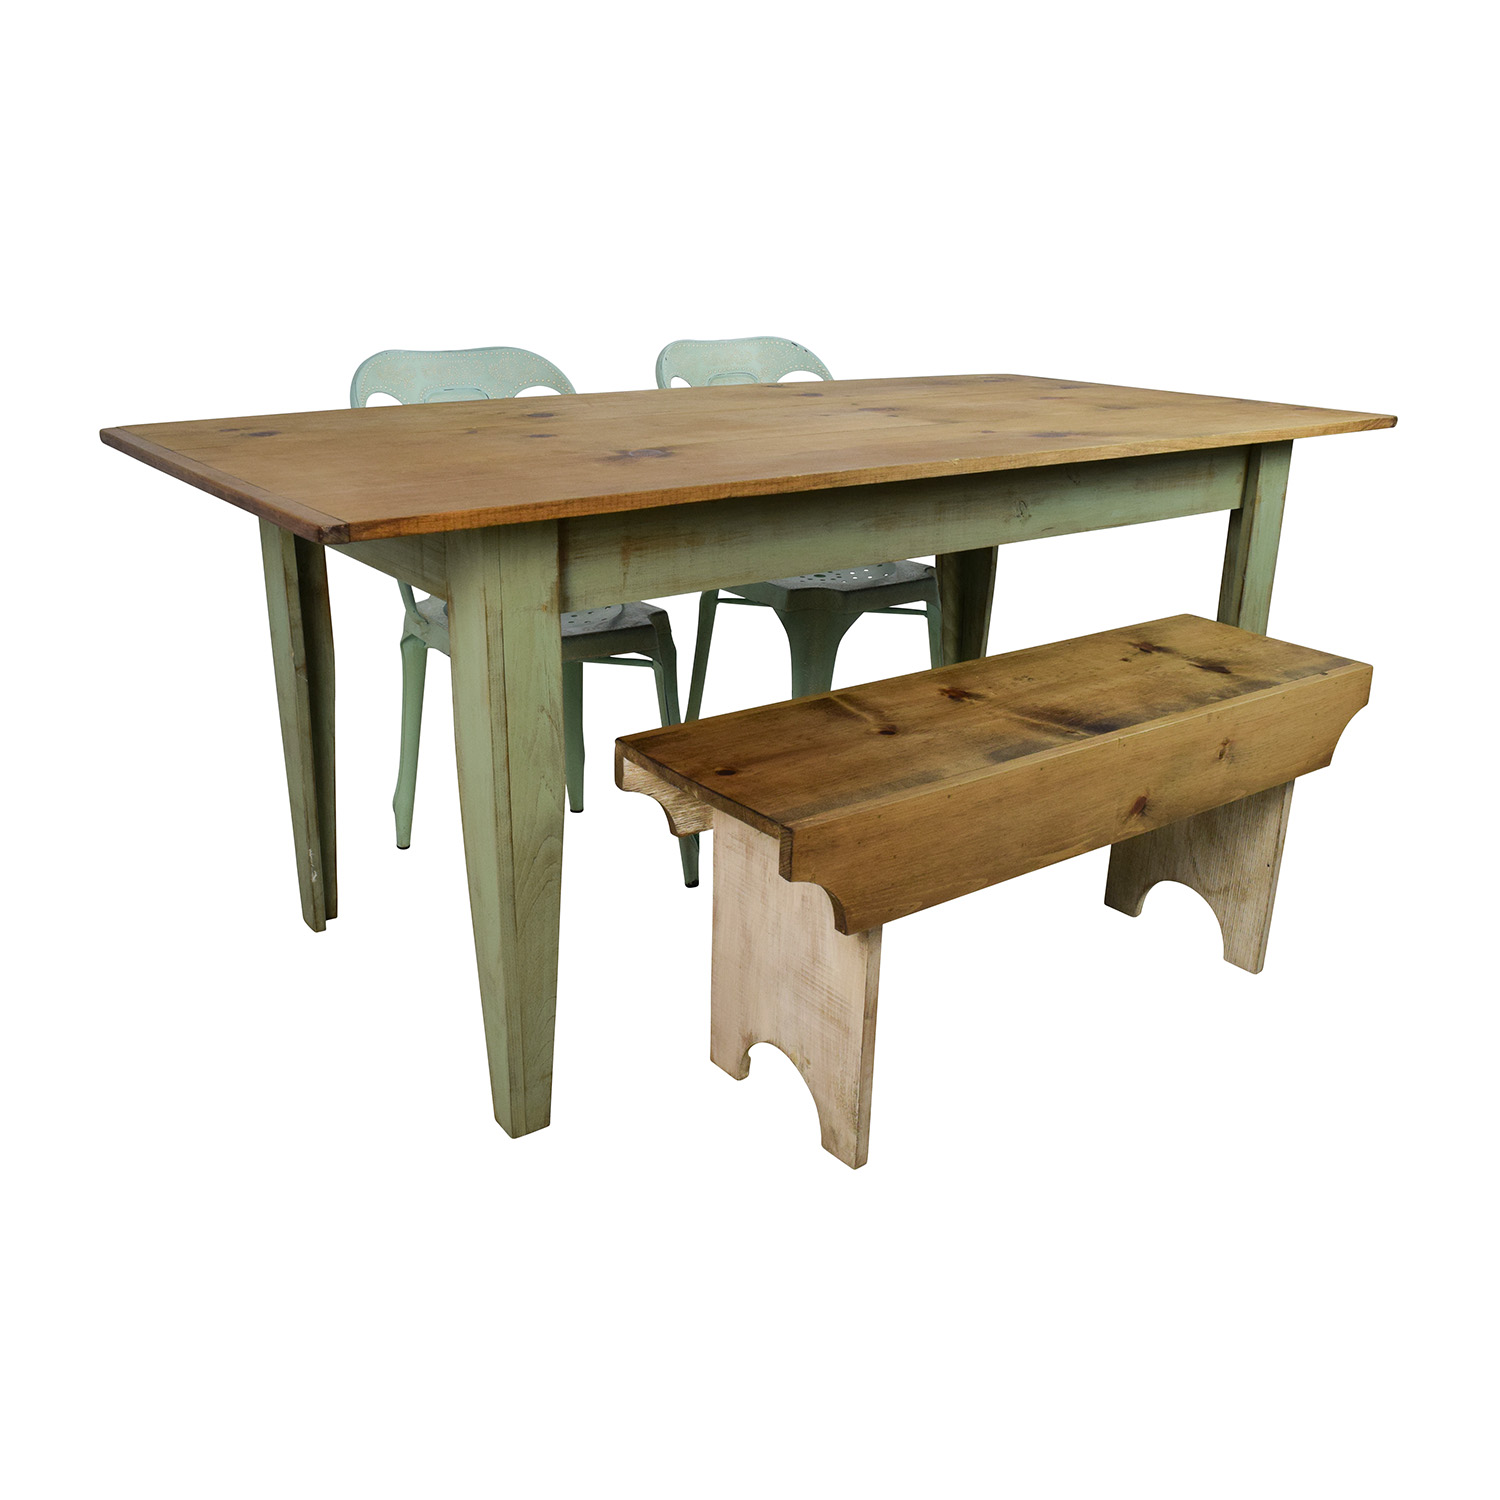 34 Off Wayfair And Urban Outfitters Urban Outfitters Rustic Farm Table With Bench And Chairs